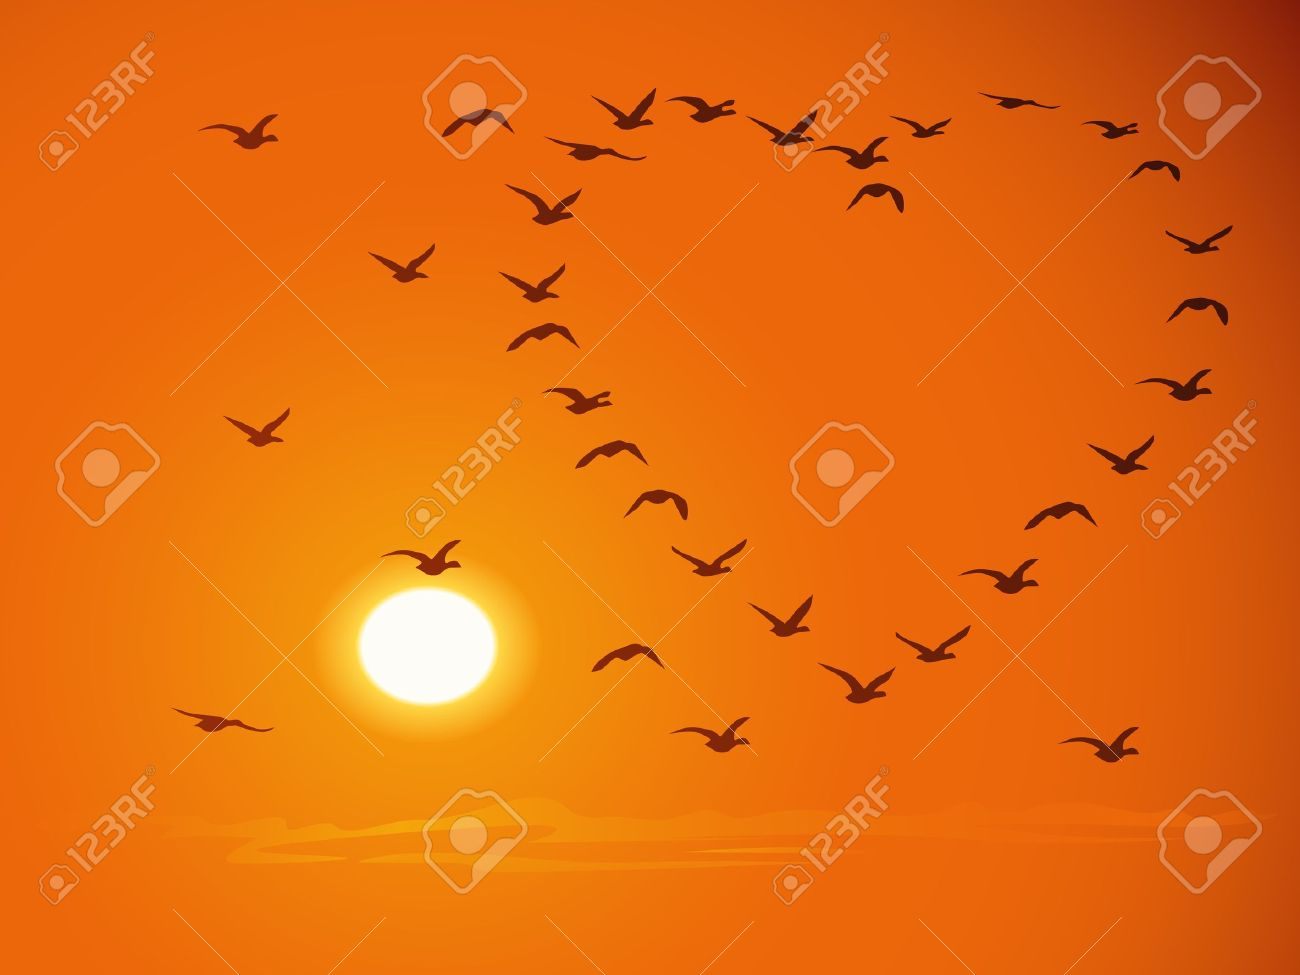 Silhouettes of flying flock birds (in shape of heart) against a sunset and the orange sky. - 16449898